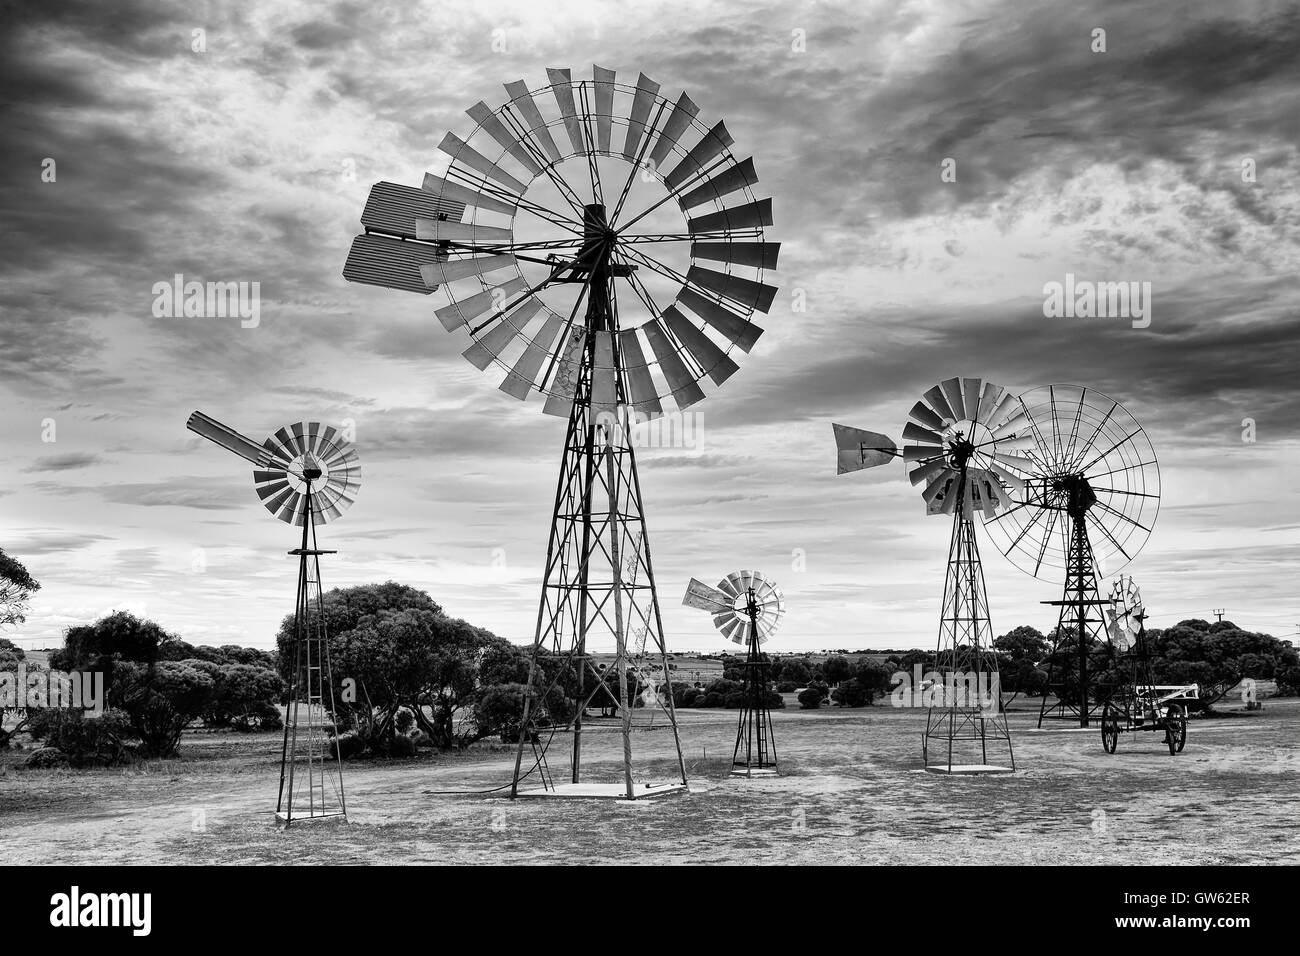 Array of historic traditional windmills in rural South Australia against cloudy sky on a hot summer day in black - Stock Image